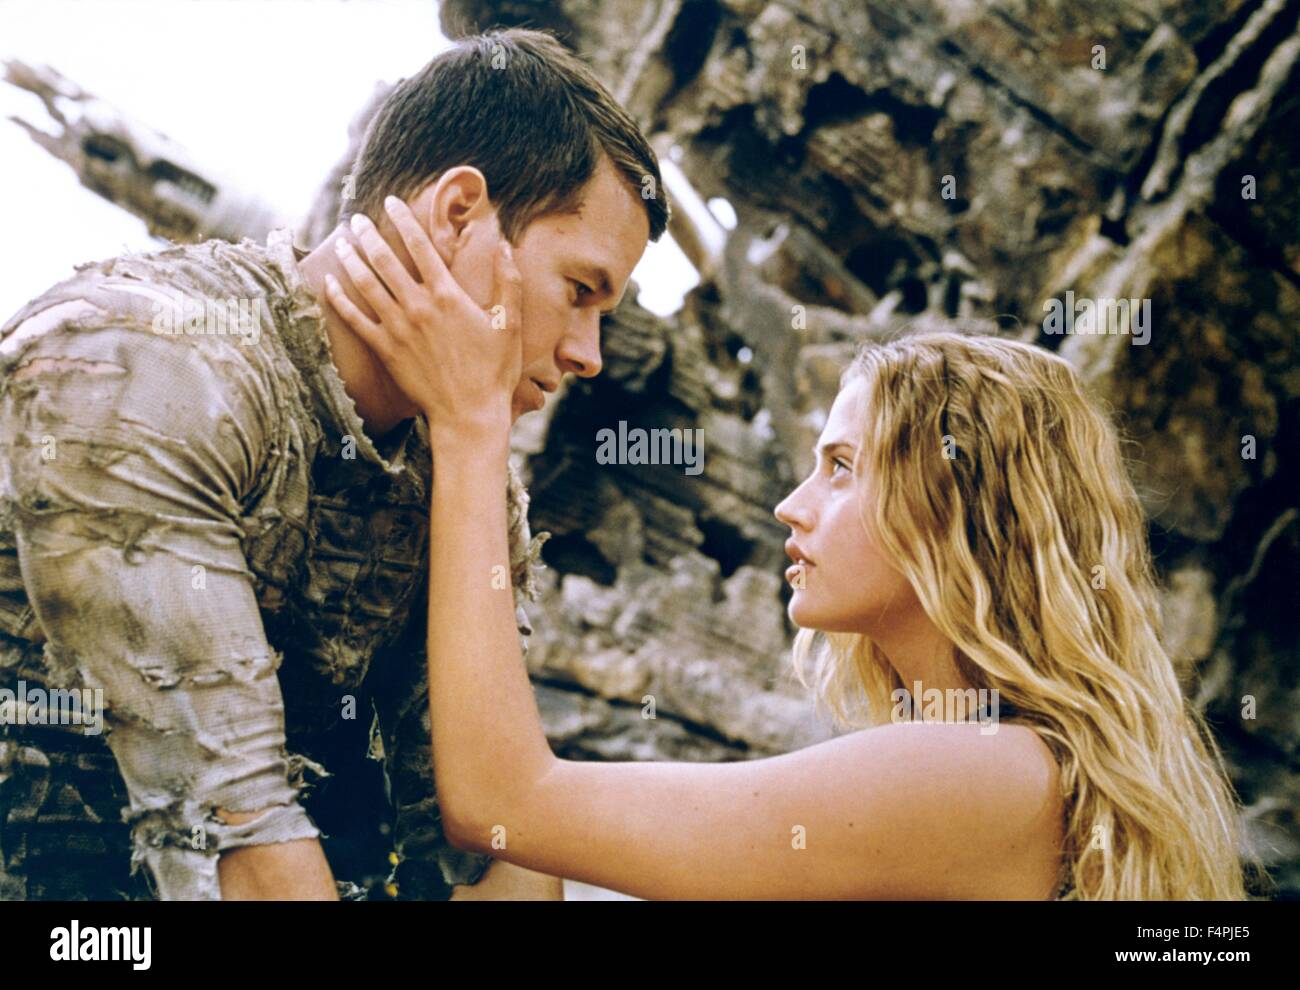 Mark Wahlberg and Estella Warren / Planet of the Apes / 2001 directed by Tim Burton [Twentieth Century Fox Film - Stock Image